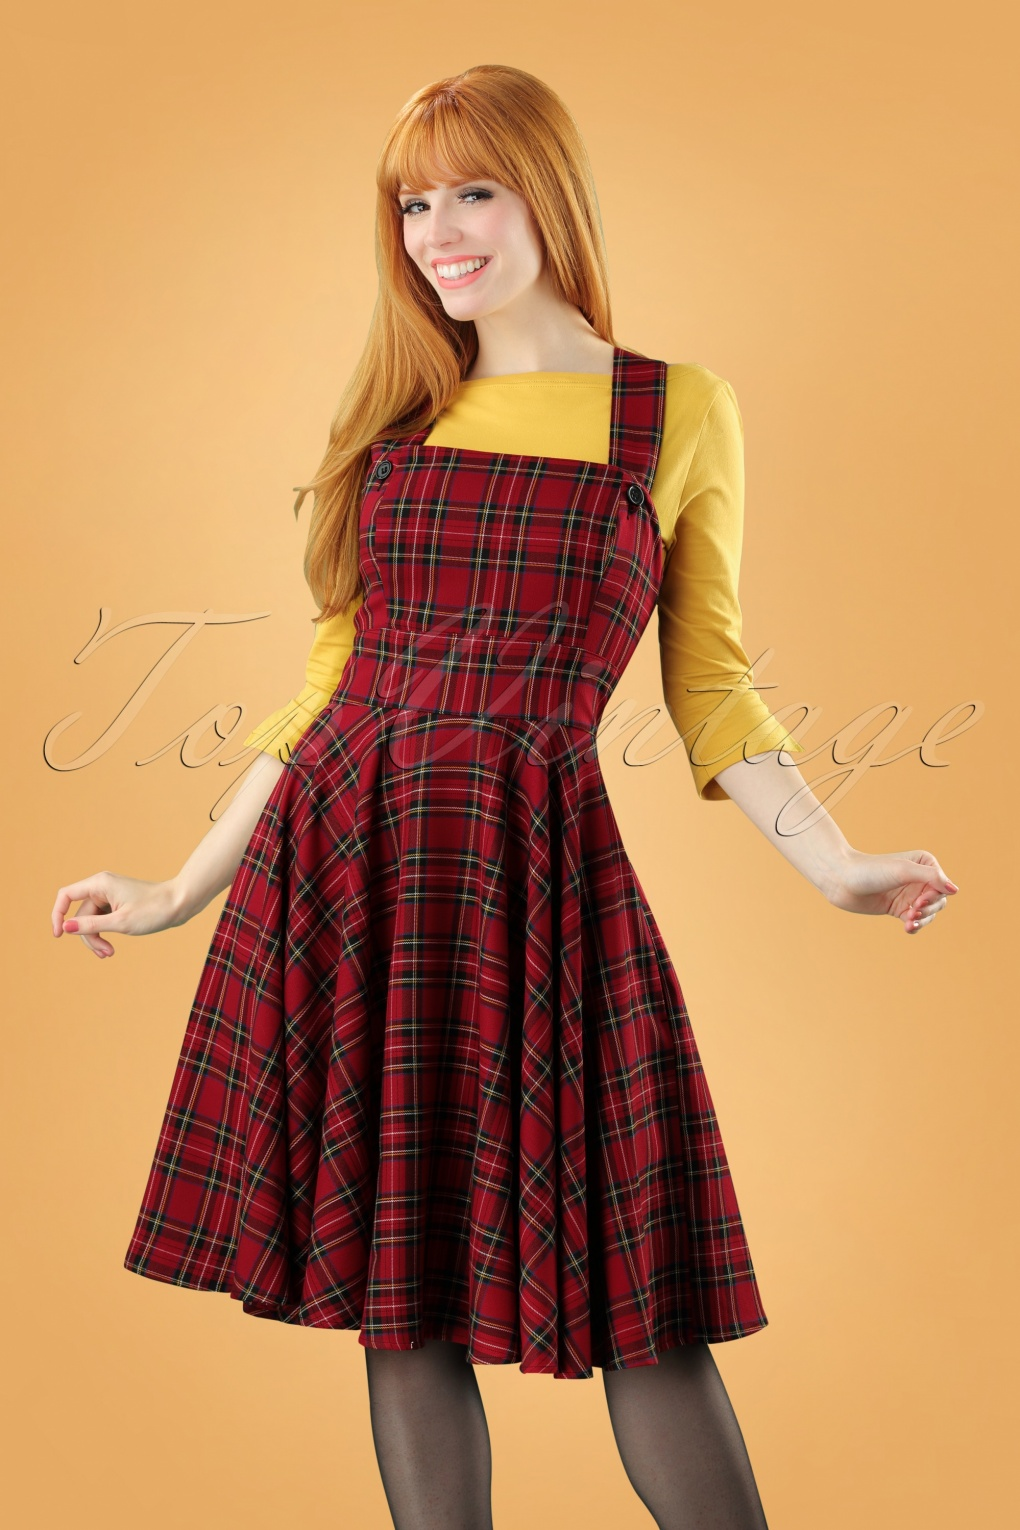 Vintage Christmas Dress | Party Dresses | Night Out Outfits 40s Peebles Pinafore Tartan Dress in Red £50.74 AT vintagedancer.com